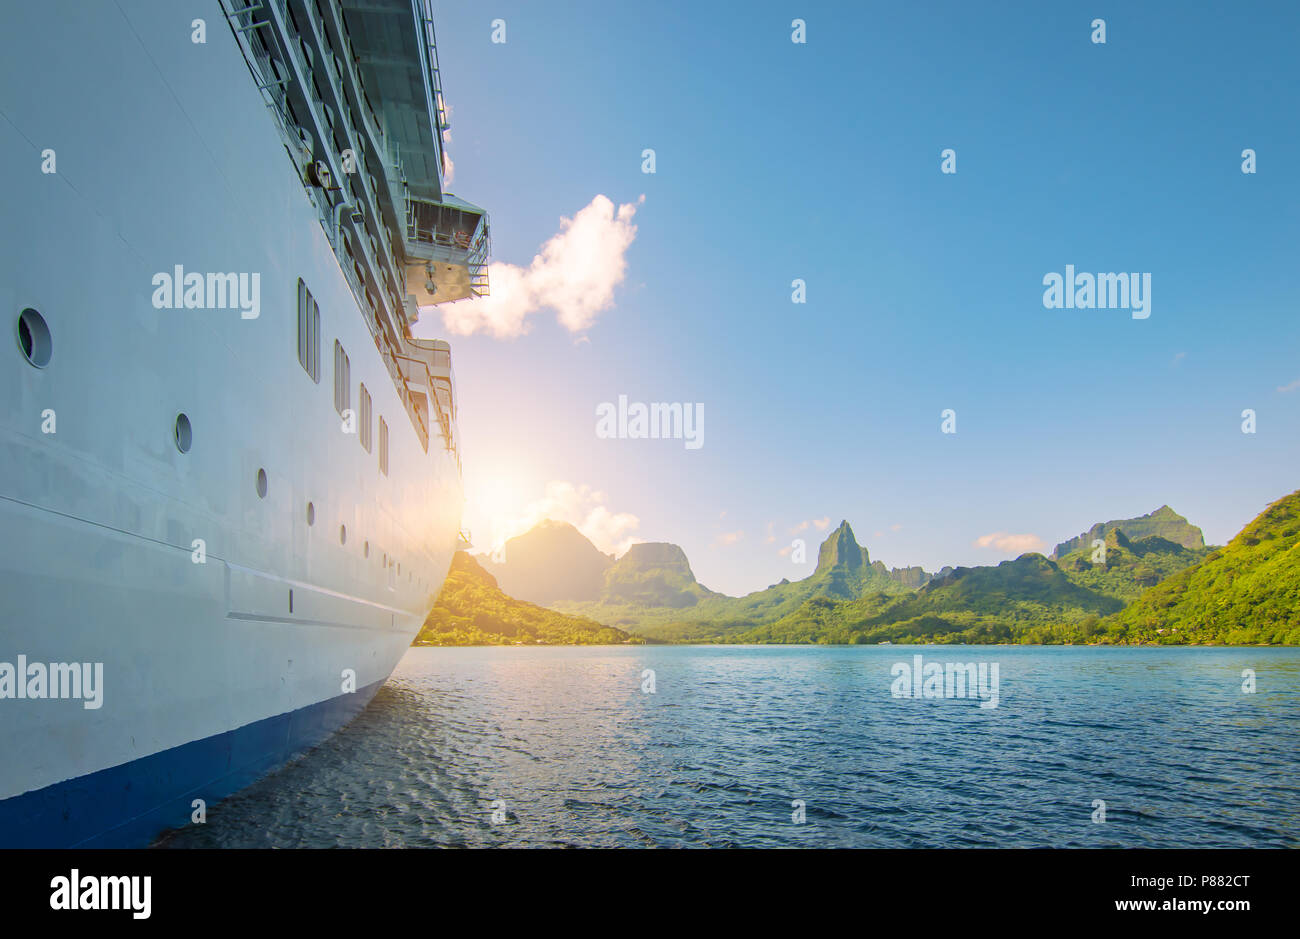 Side view of anchored cruise ship at sunset. Mountain background. Stock Photo